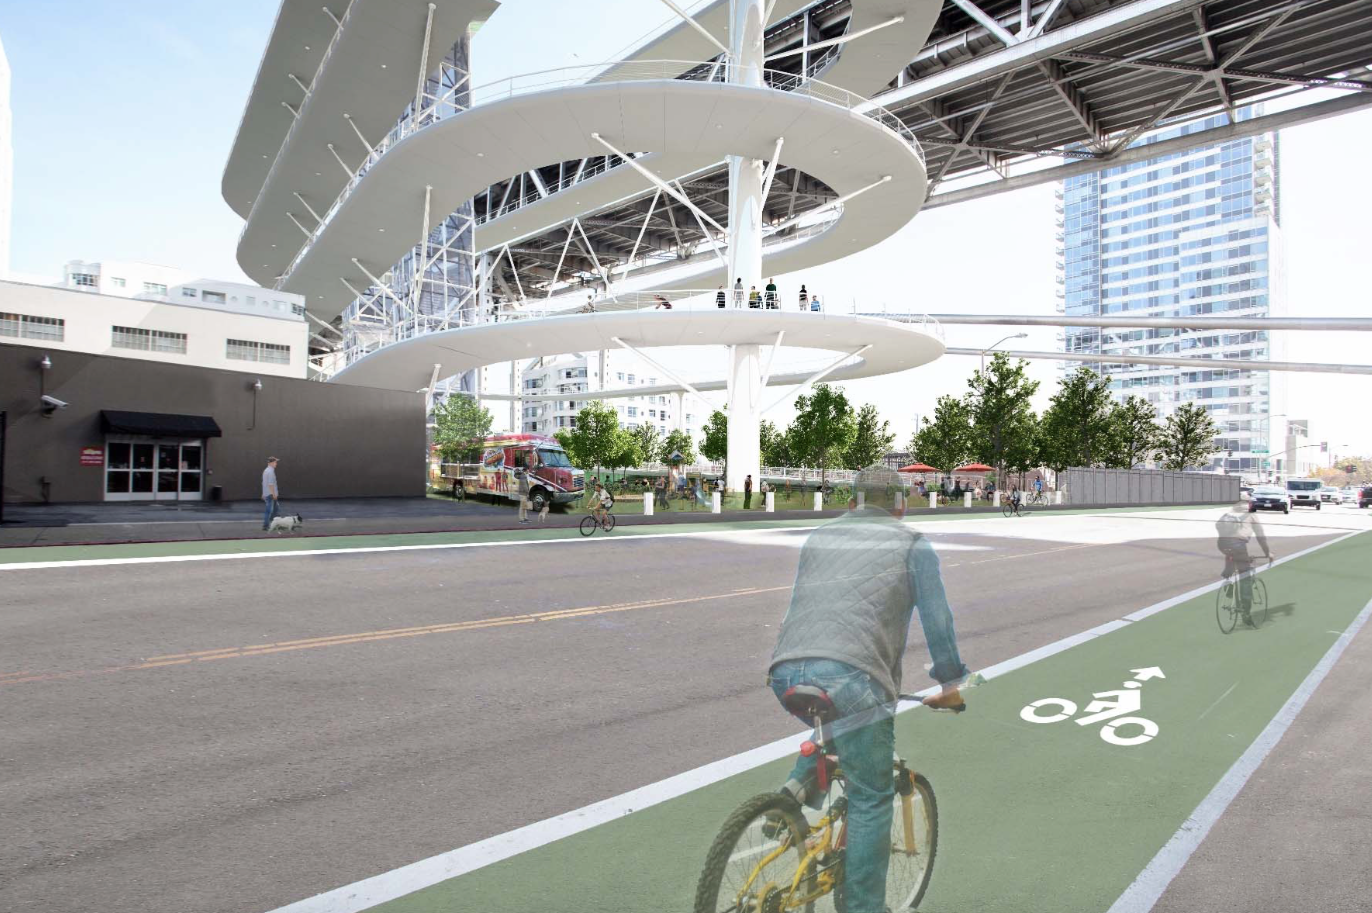 This Ridiculous Ramp Is SF's Best Idea for a Bike Path Across the Entire Bay Bridge